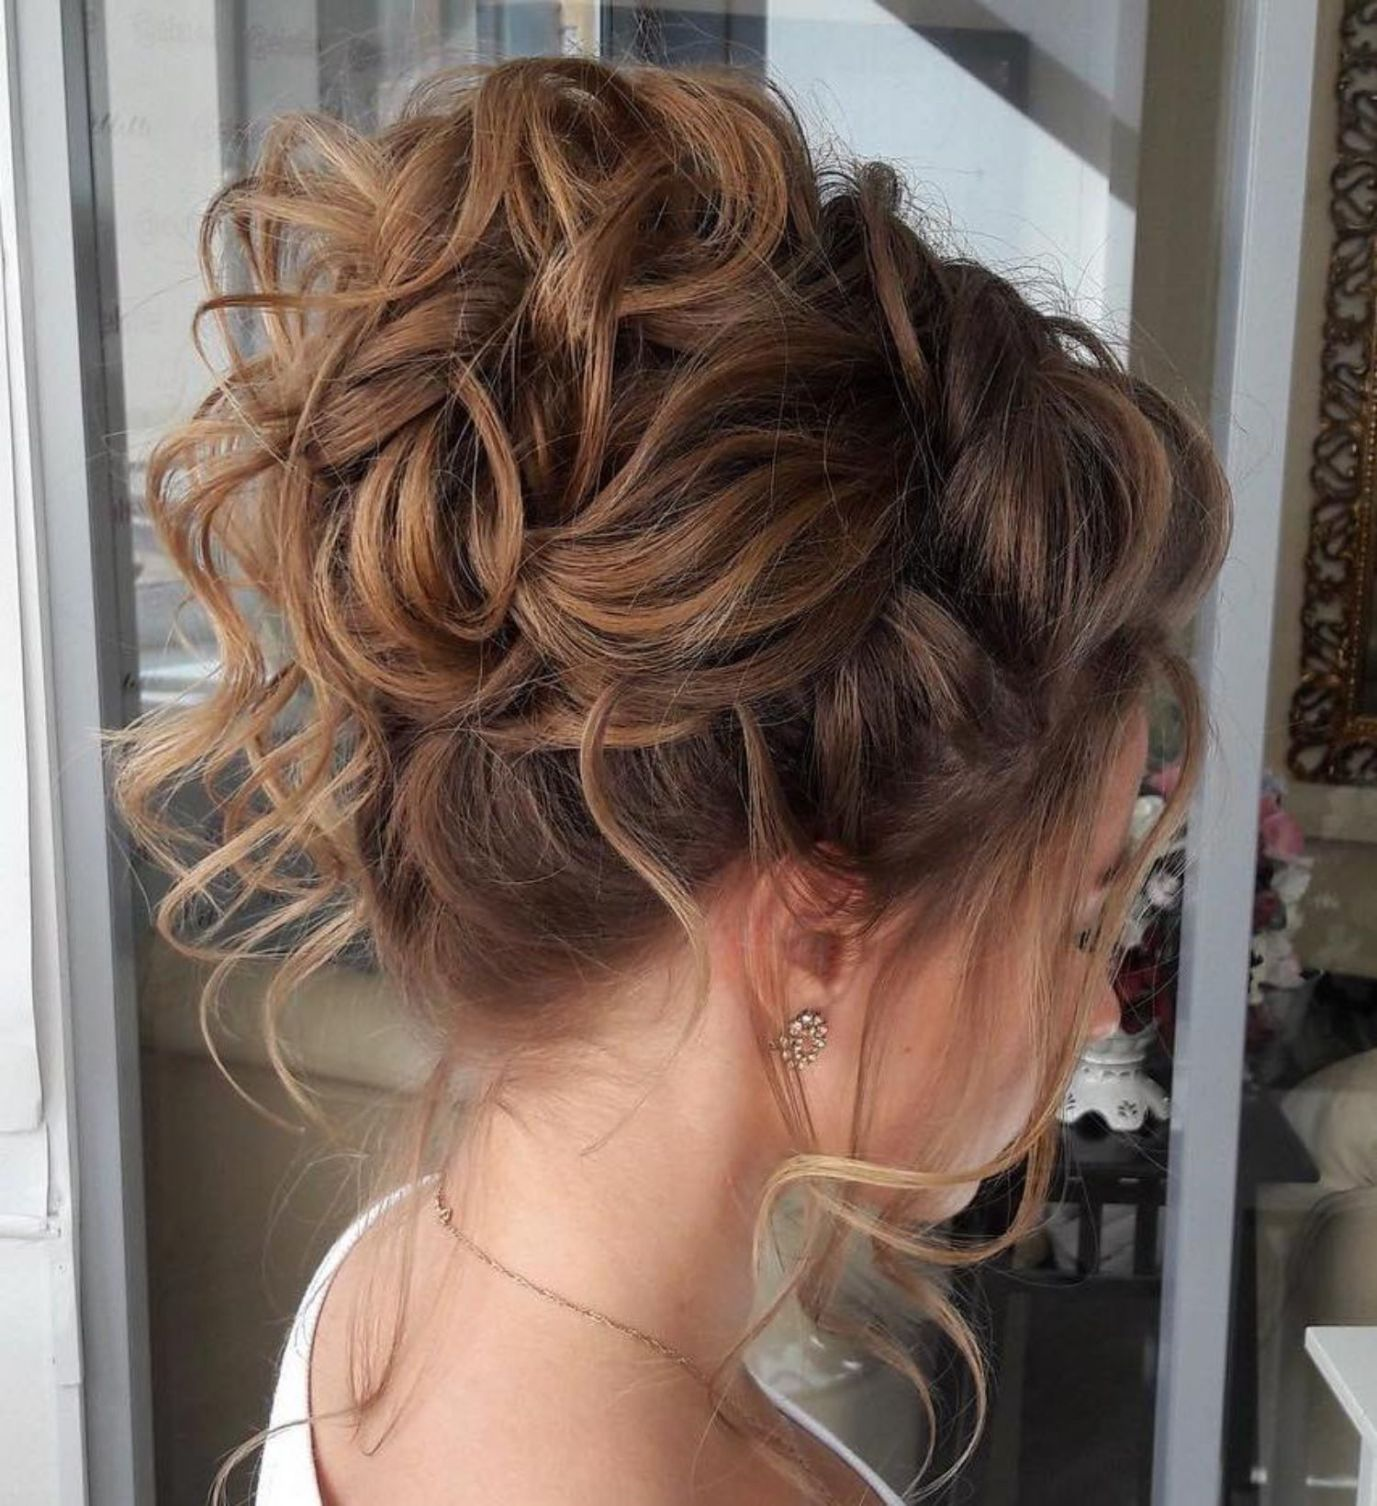 40 creative updos for curly hair in 2019 | hair, hair styles